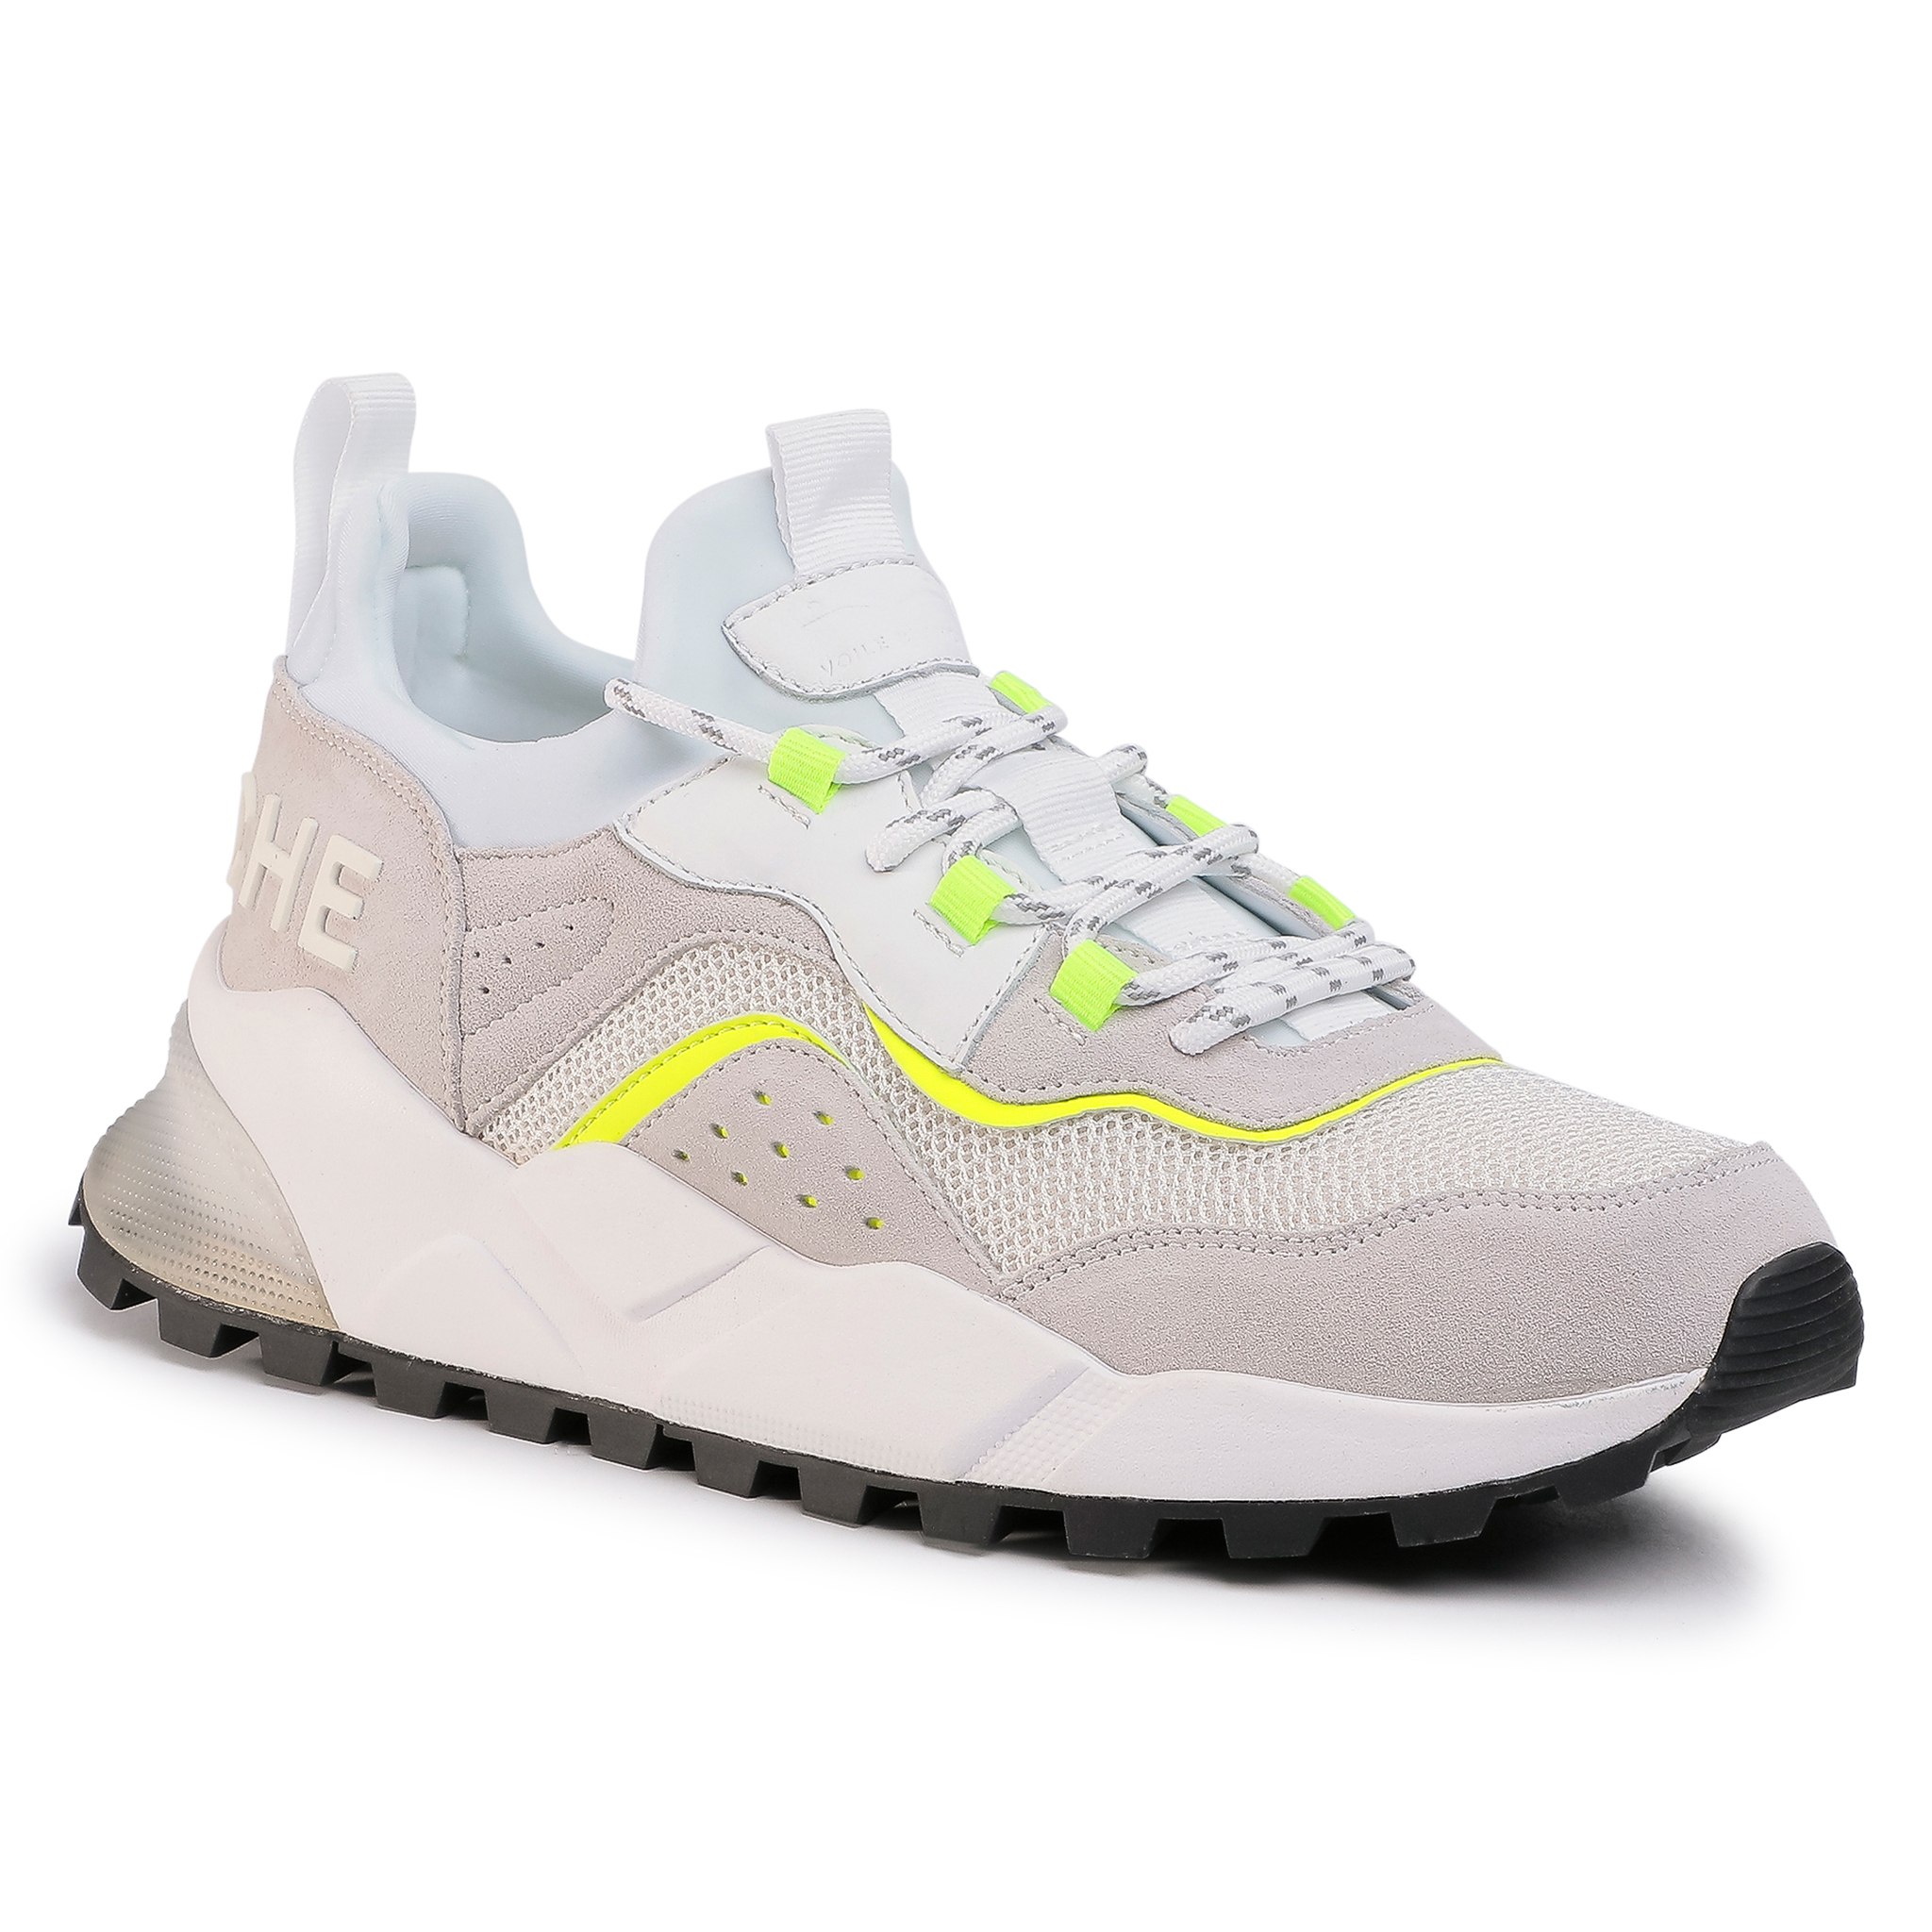 Sneakers VOILE BLANCHE - Clubo4 0012014830.01.1N40 Bianco/Giallo Flu